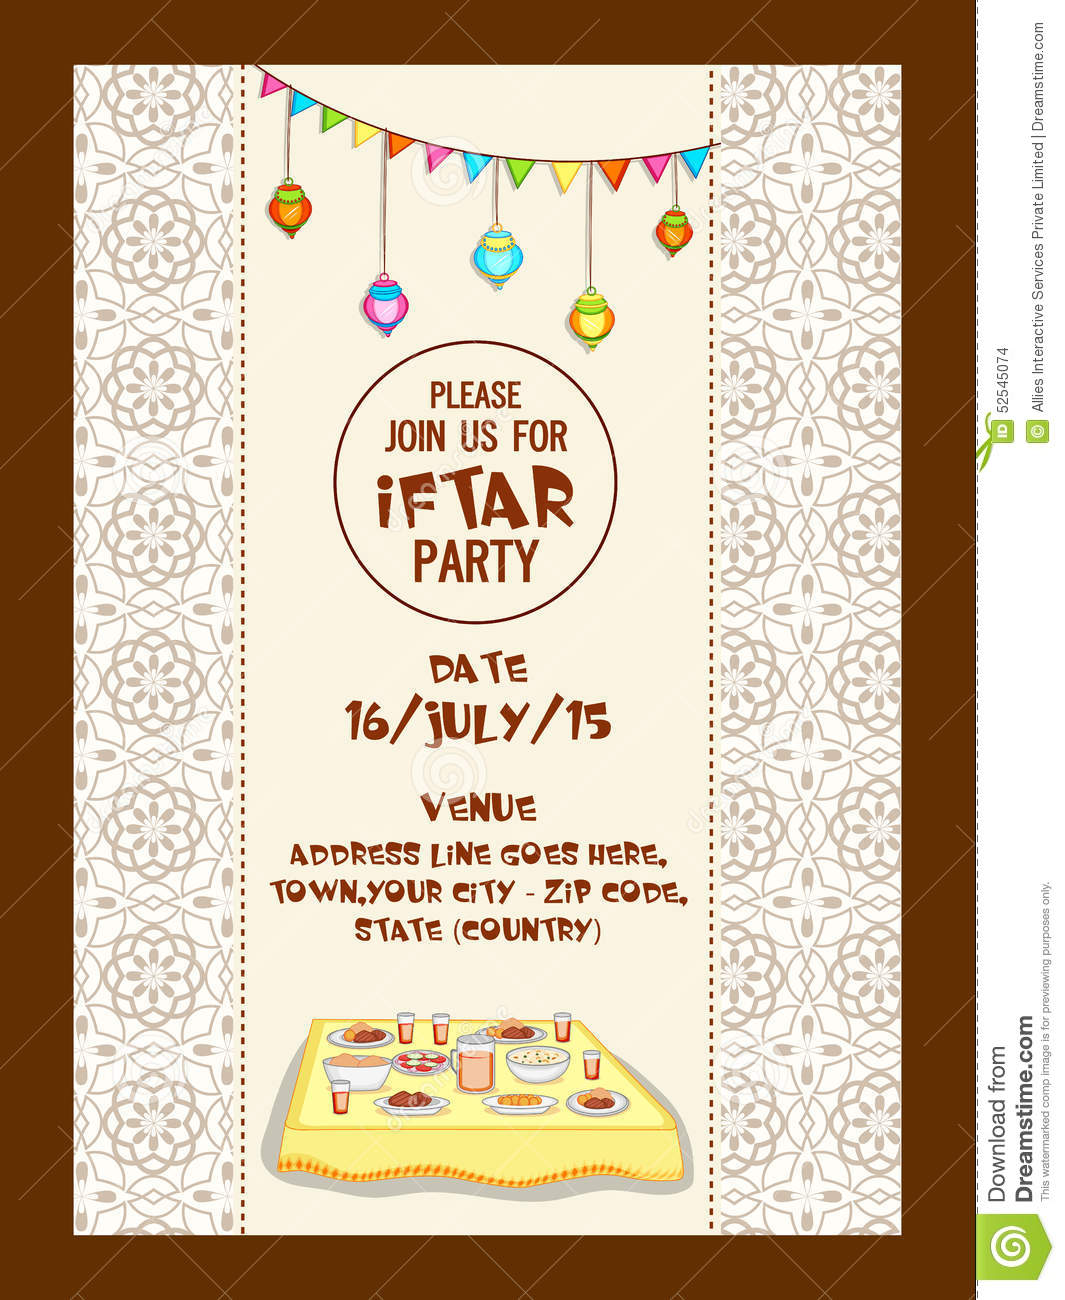 Ramadan Kareem Iftar Party Celebration Invitation Card Design – Party Invitation Card Design